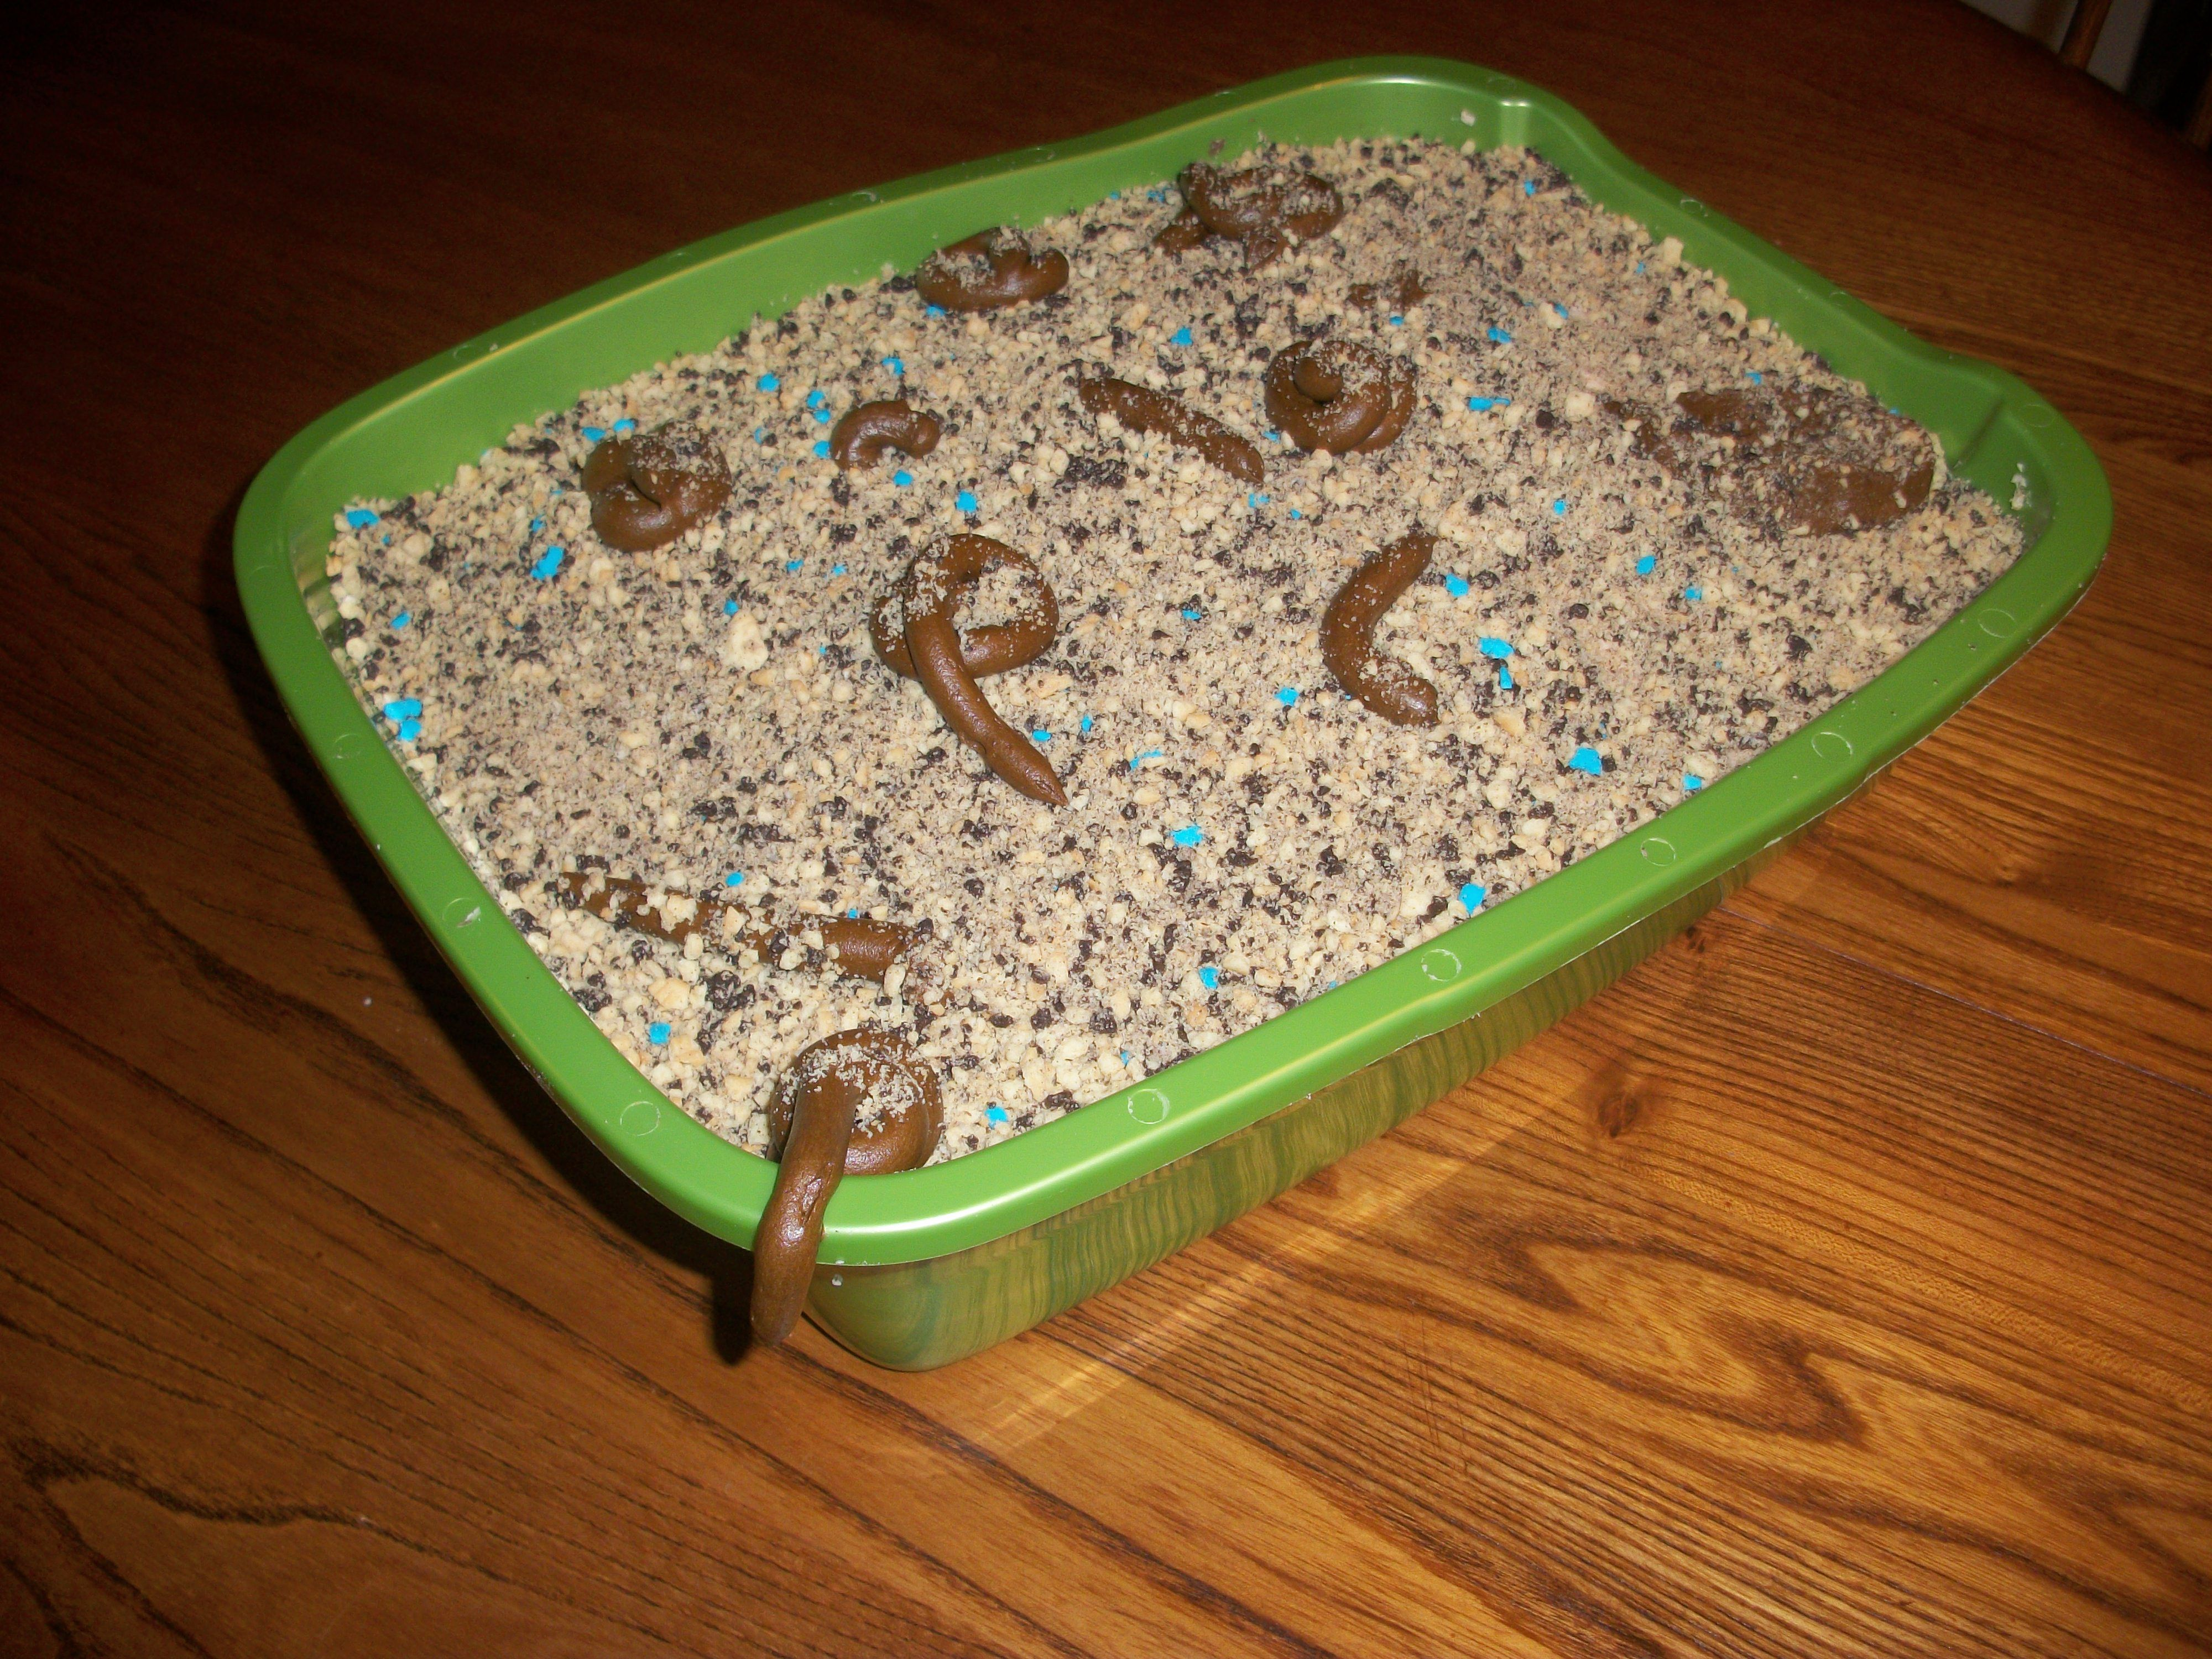 Kitty Litter Box Birthday Cake For A Cat Lover Lol My - Kitty litter birthday cake